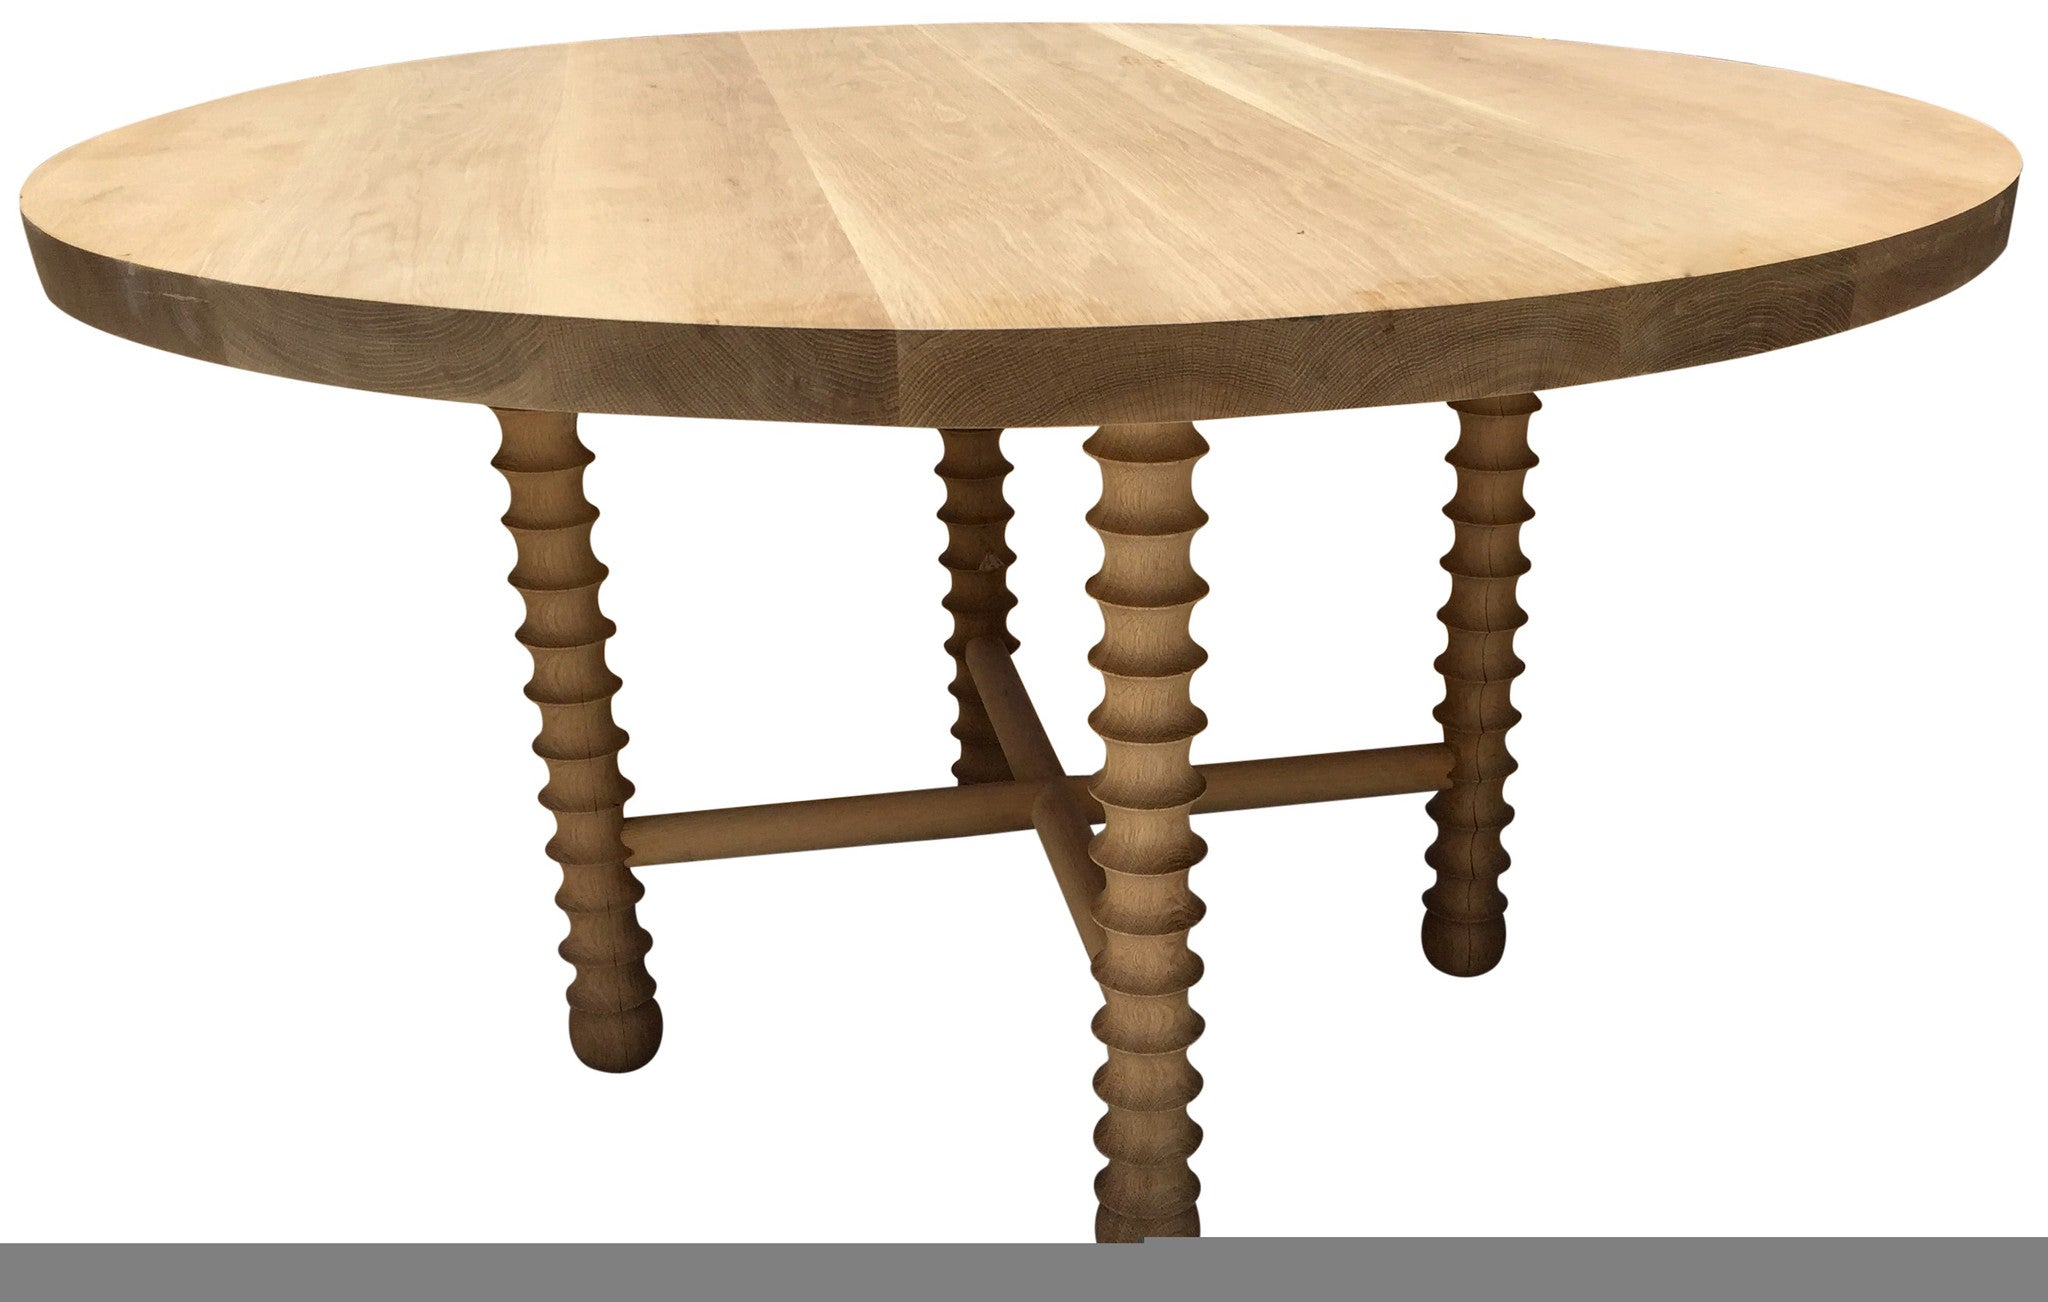 Modern Large White Oak Round Dining Table Haskell Design Haskell